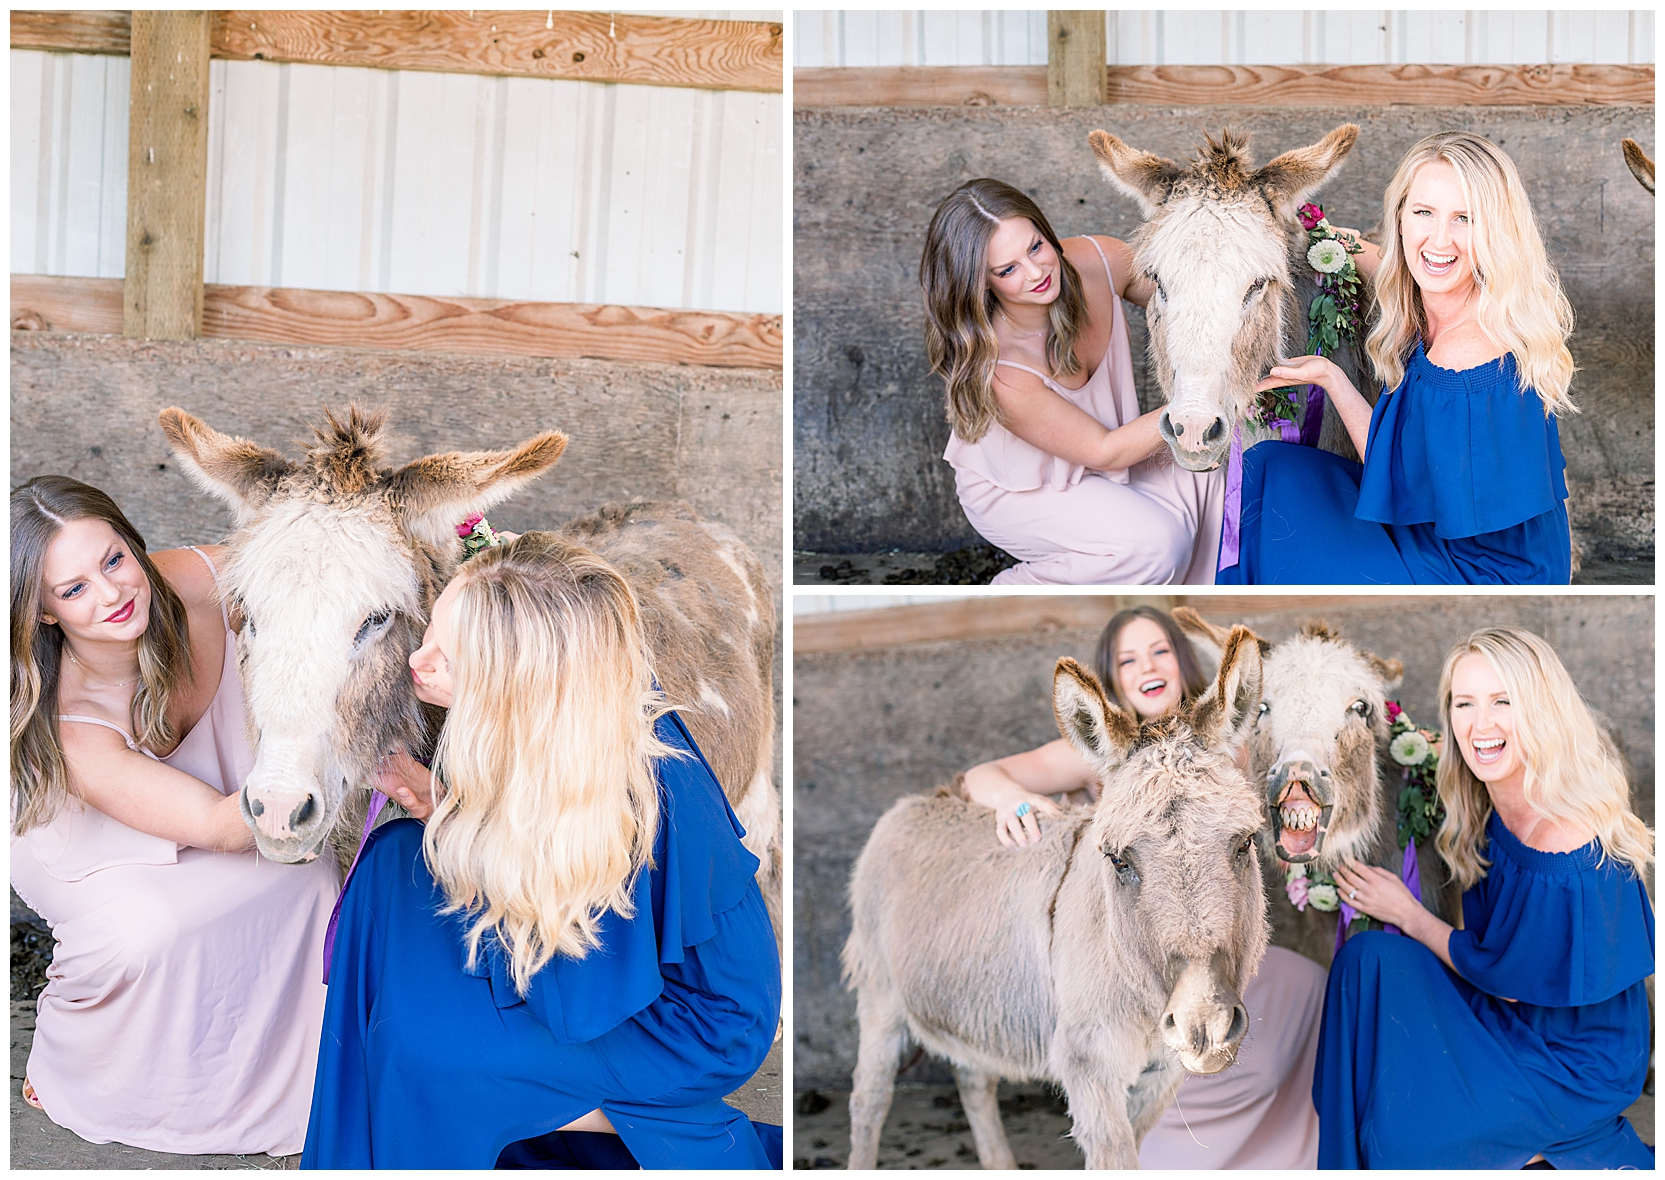 jessicafredericks_st petersburg_wedding_photographer_bridesmaid_farm_donkey_flower crown_inspo_0009.jpg